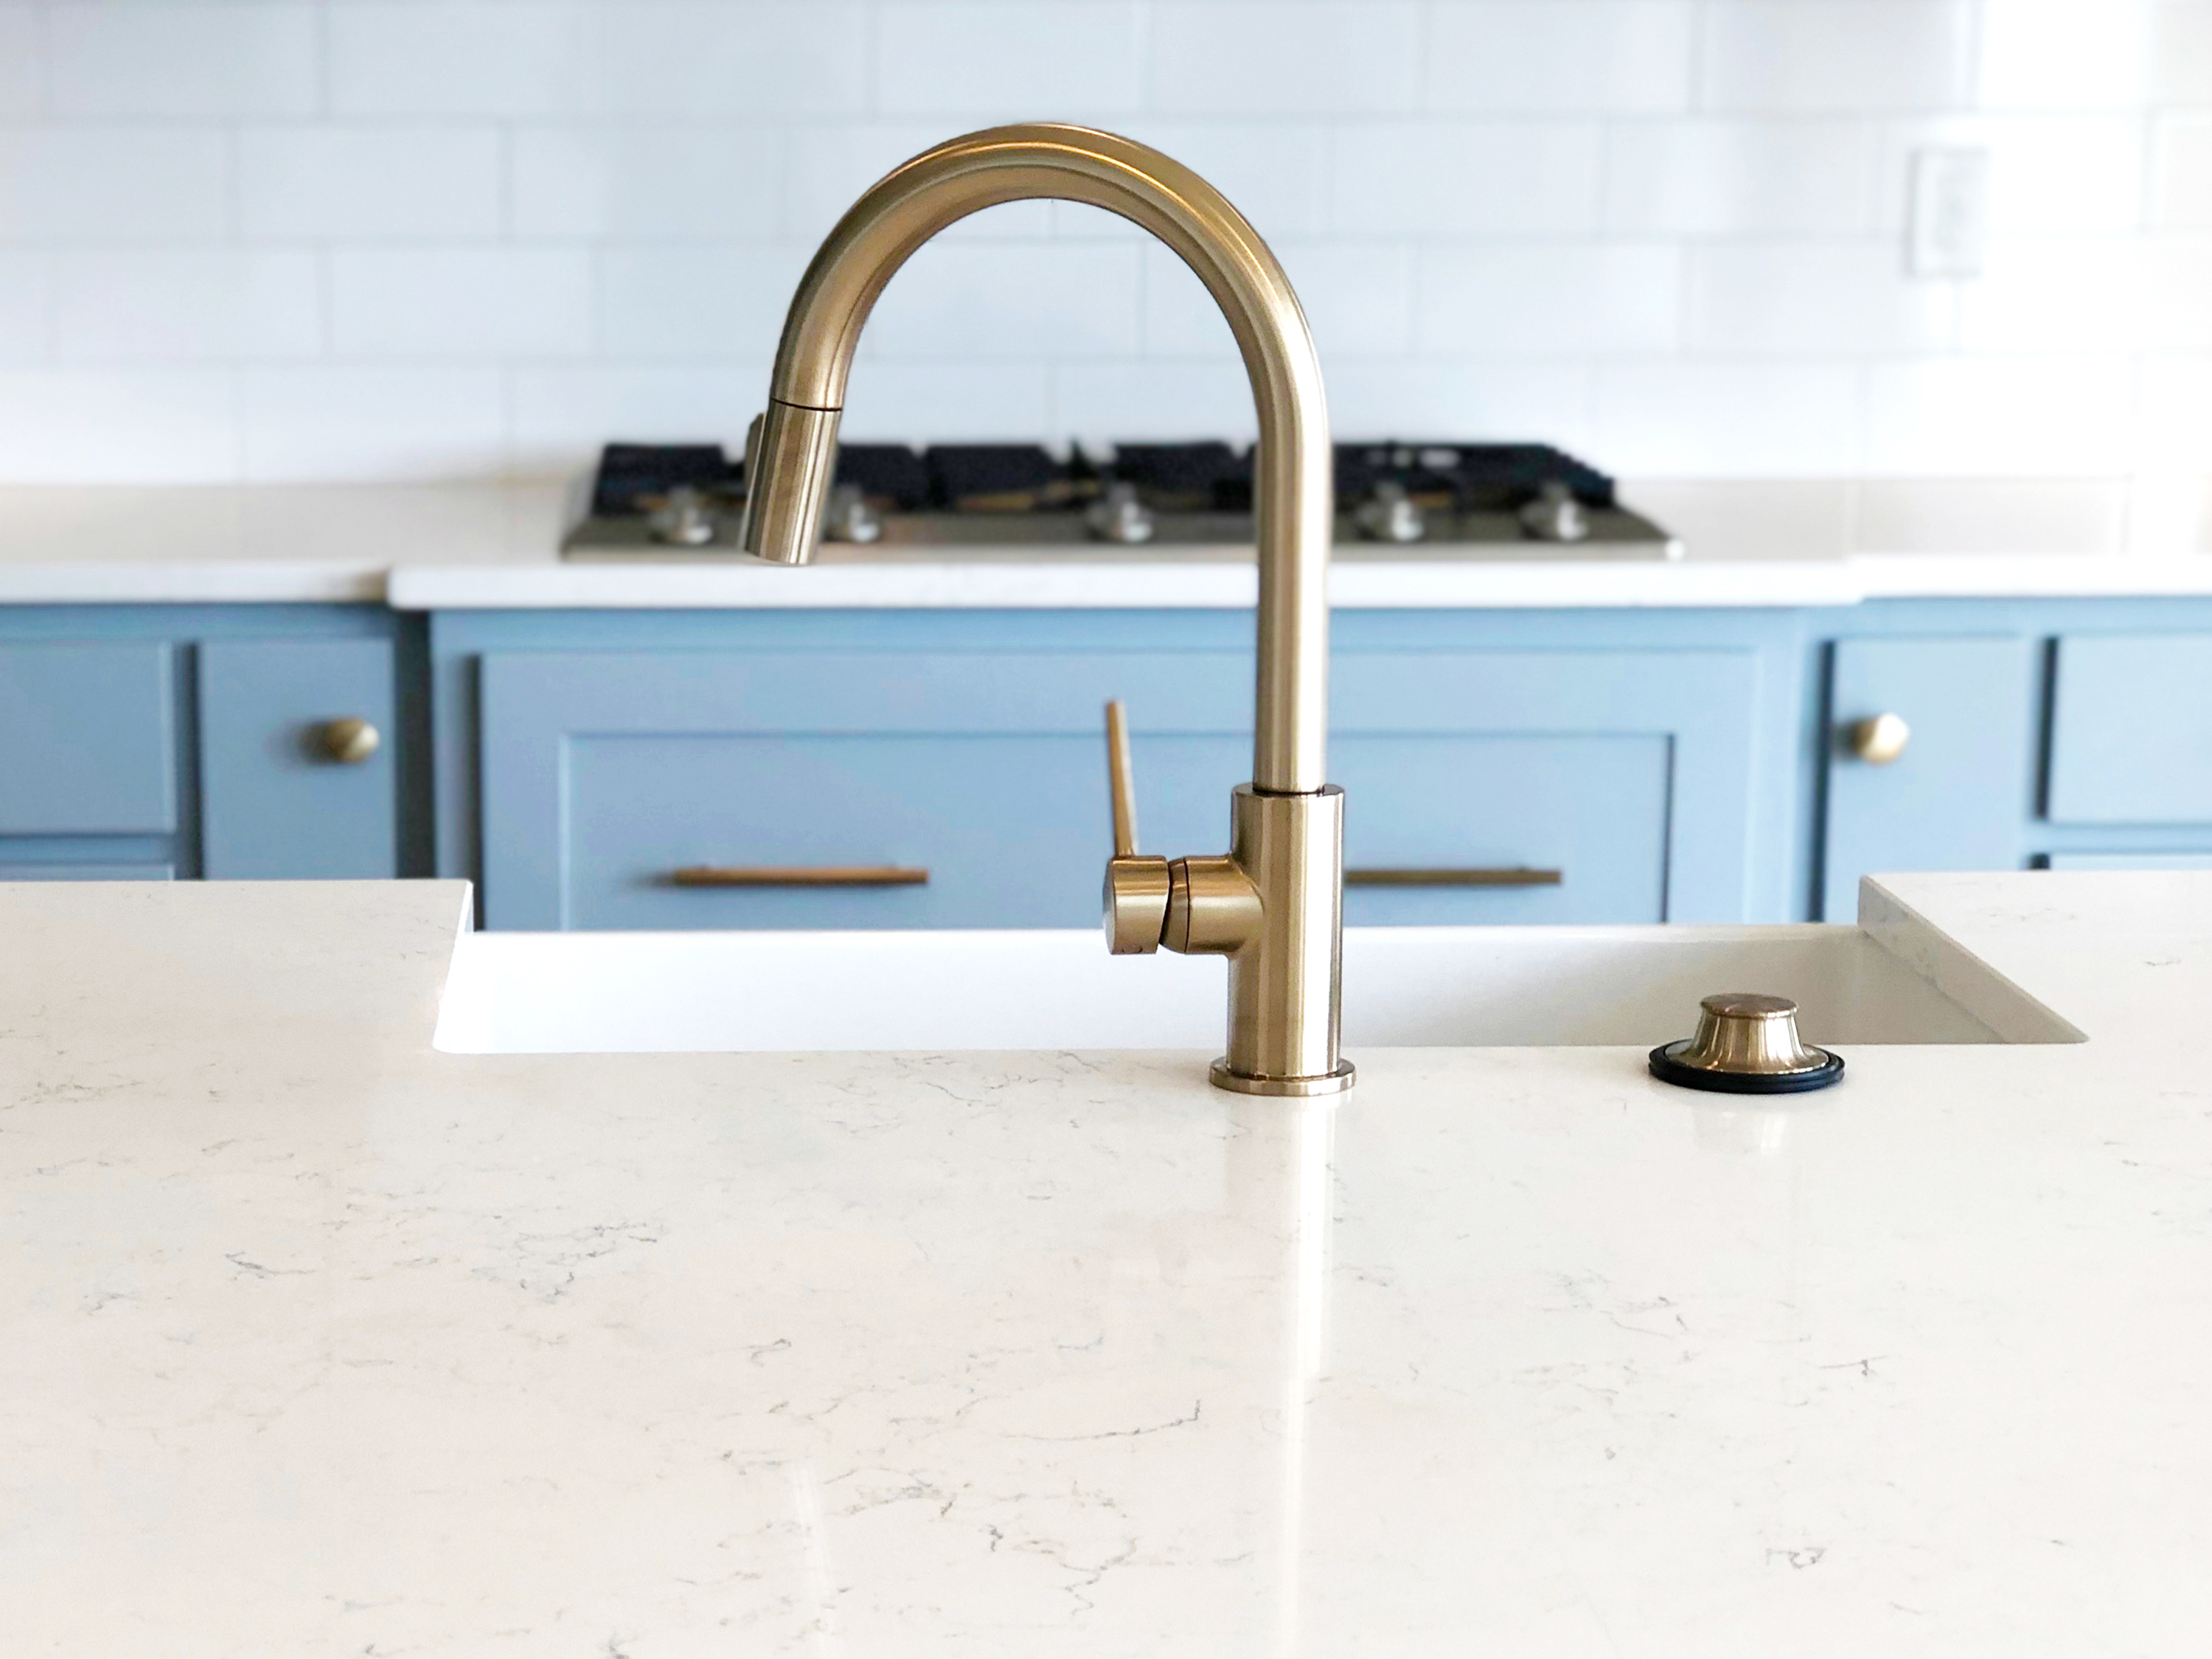 How to Clean Quartz Countertops: Advice for Beginners